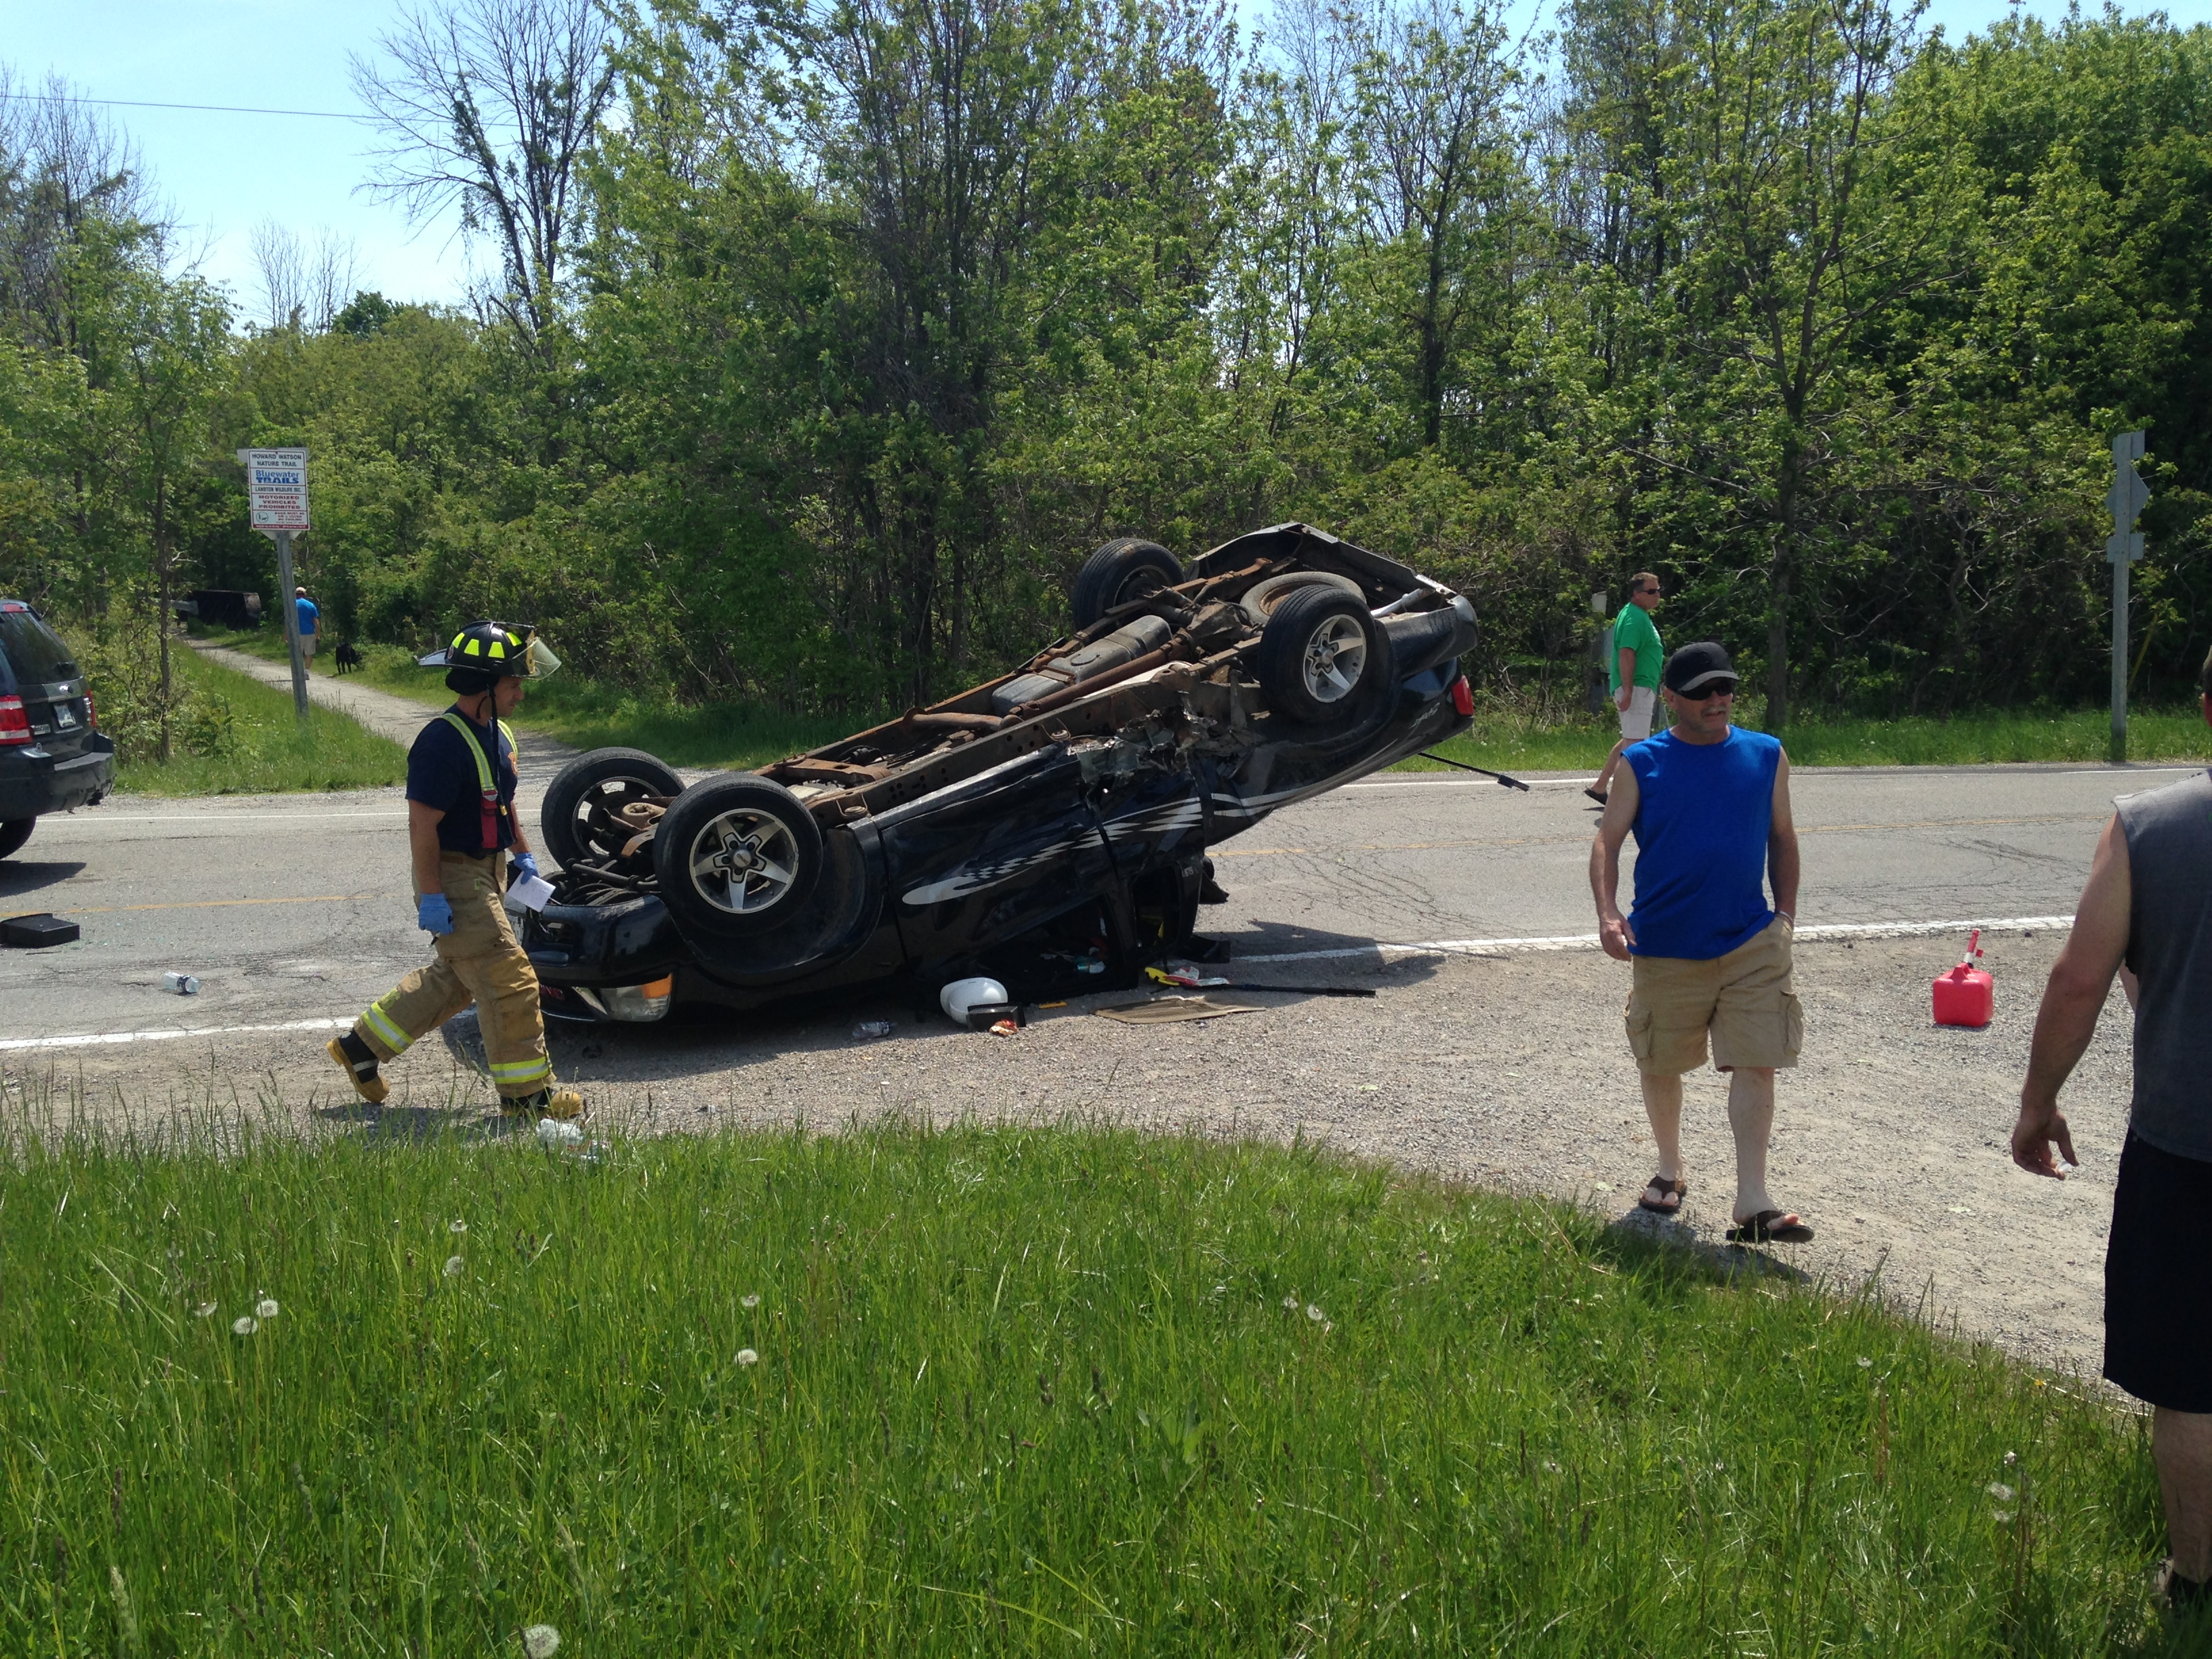 Police, EMS and fire crews attend the scene of a three-vehicle crash in the area of Lakeshore Rd. and Waterworks Side Rd. in Brights Grove, June 1, 2014. (Photo courtesy of Brian Grahlman)